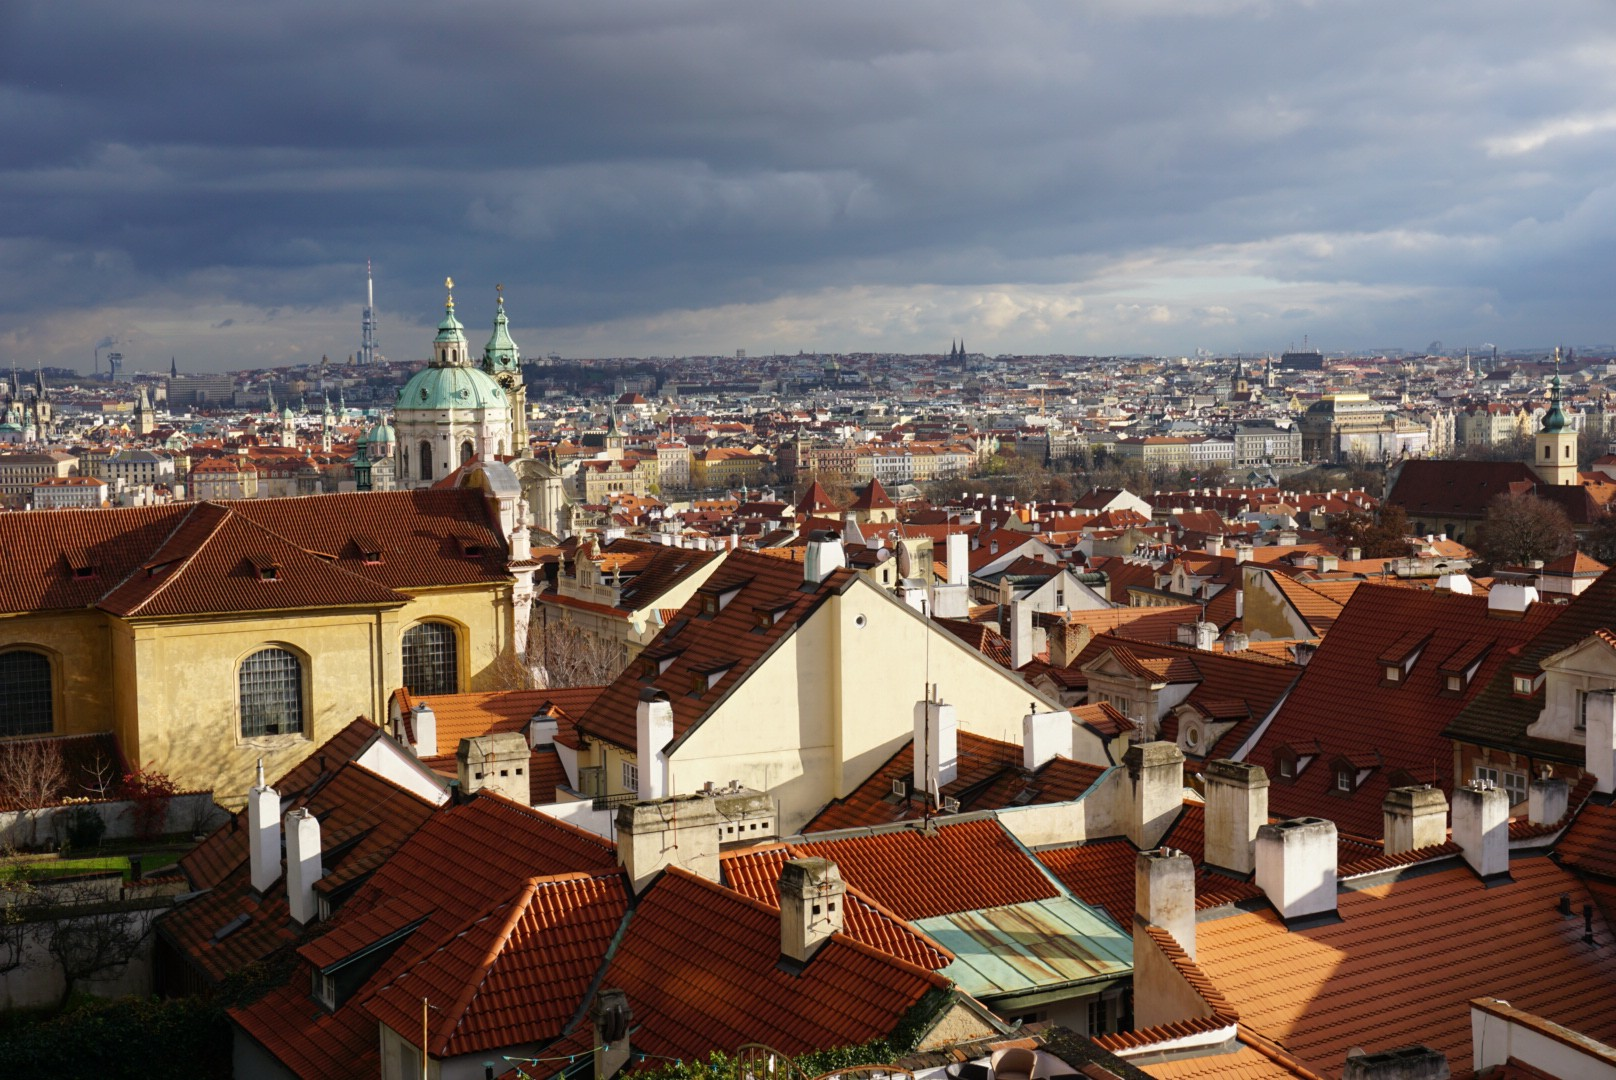 Beautiful skyline of Prague filled with red tiled roofs.